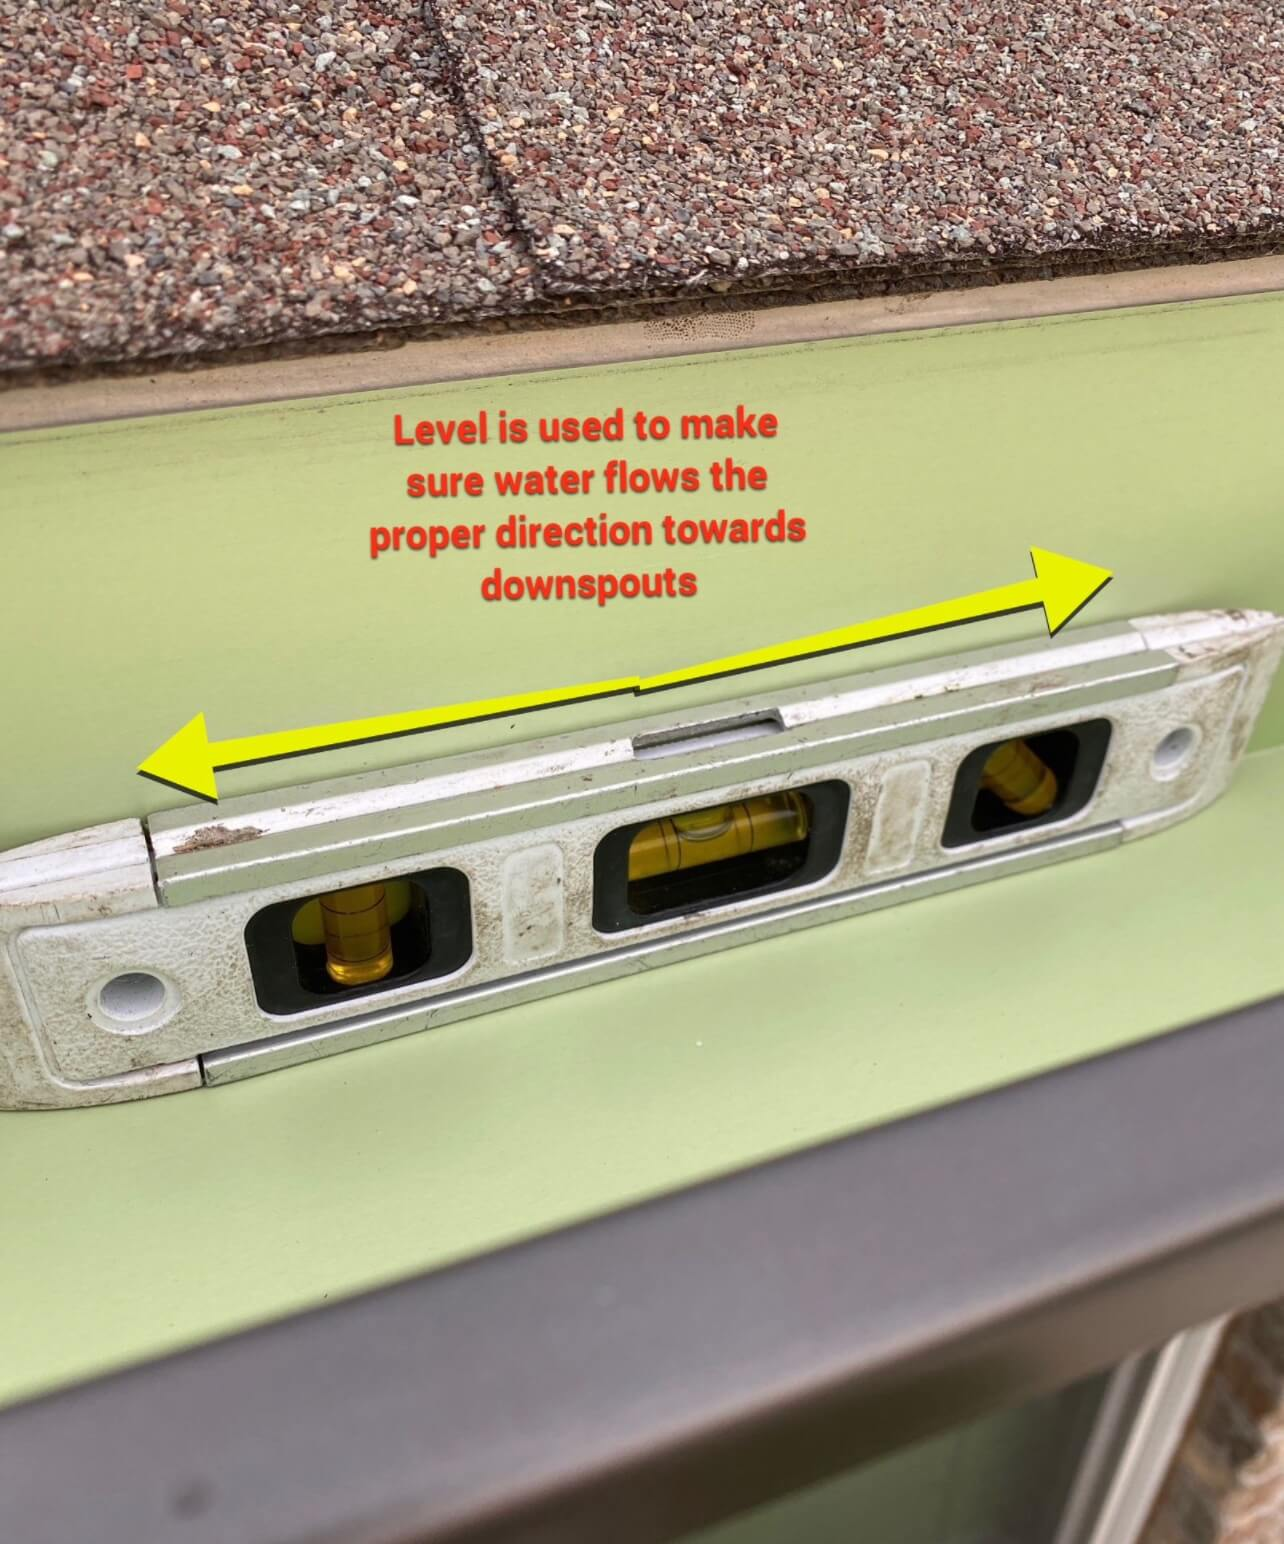 a level placed inside of a gutter